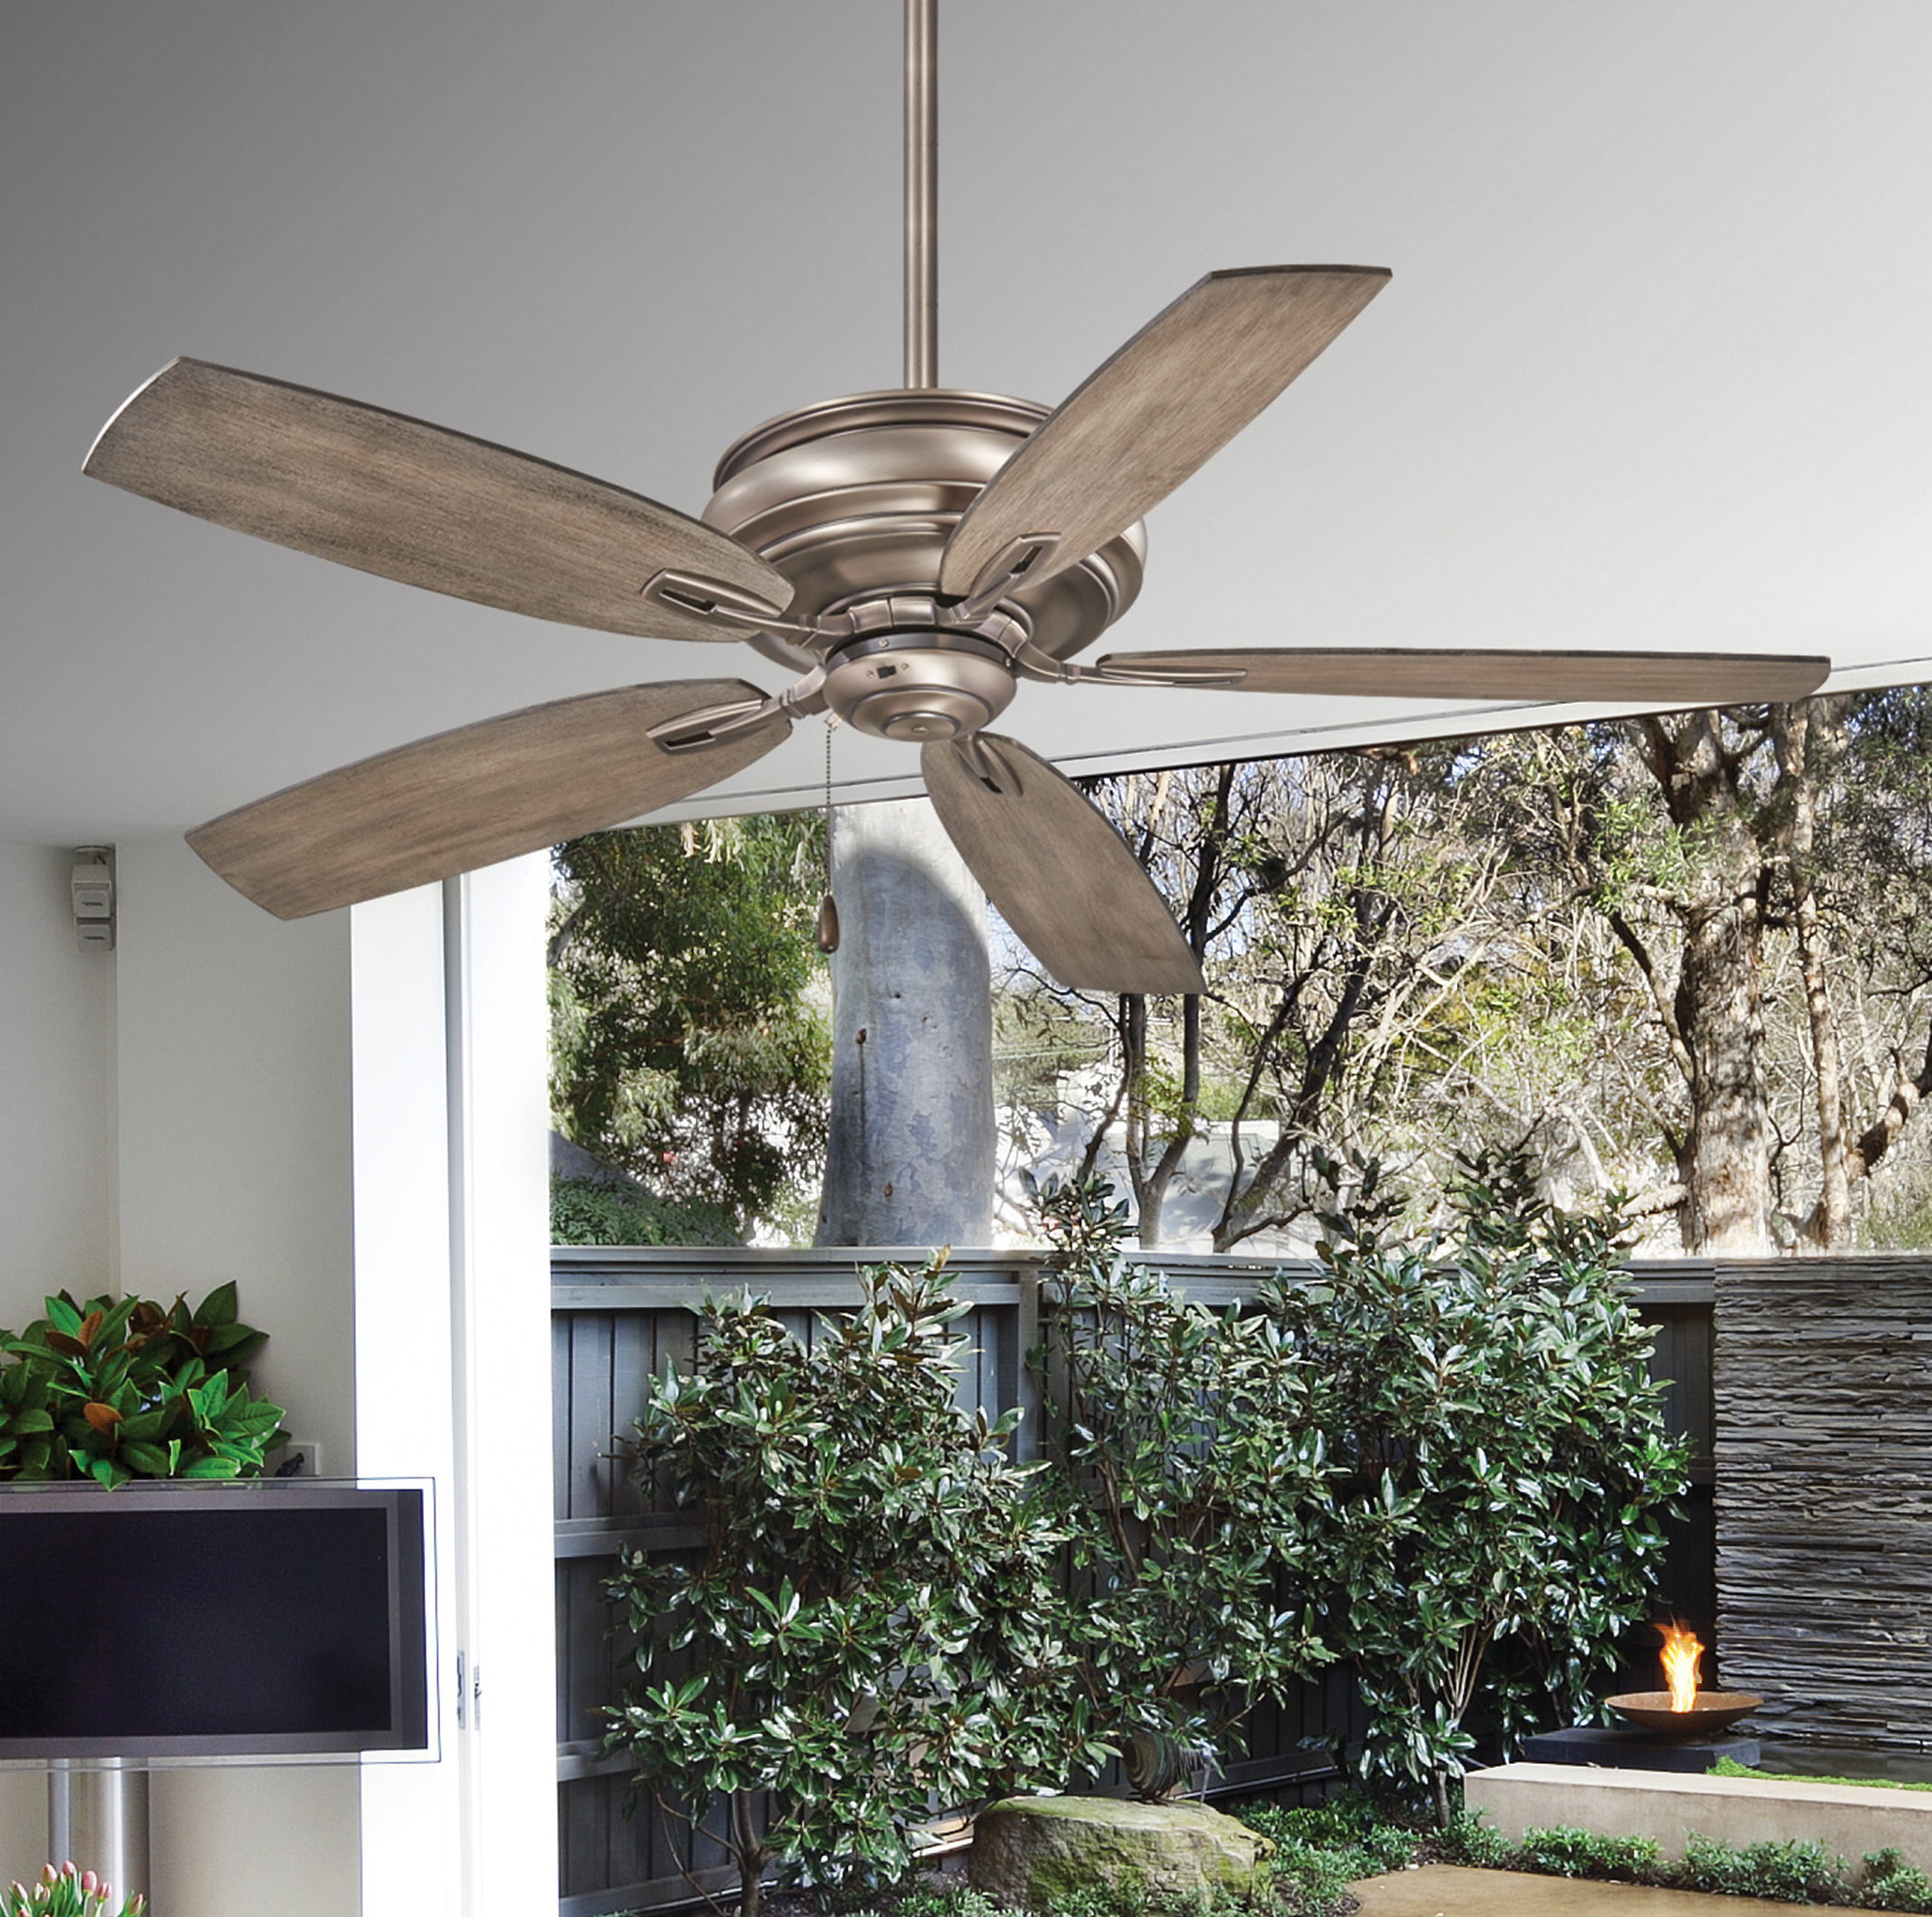 "Classica 5 Blade Ceiling Fans With Regard To 2020 54"" Timeless 5 Blade Ceiling Fan (View 7 of 20)"